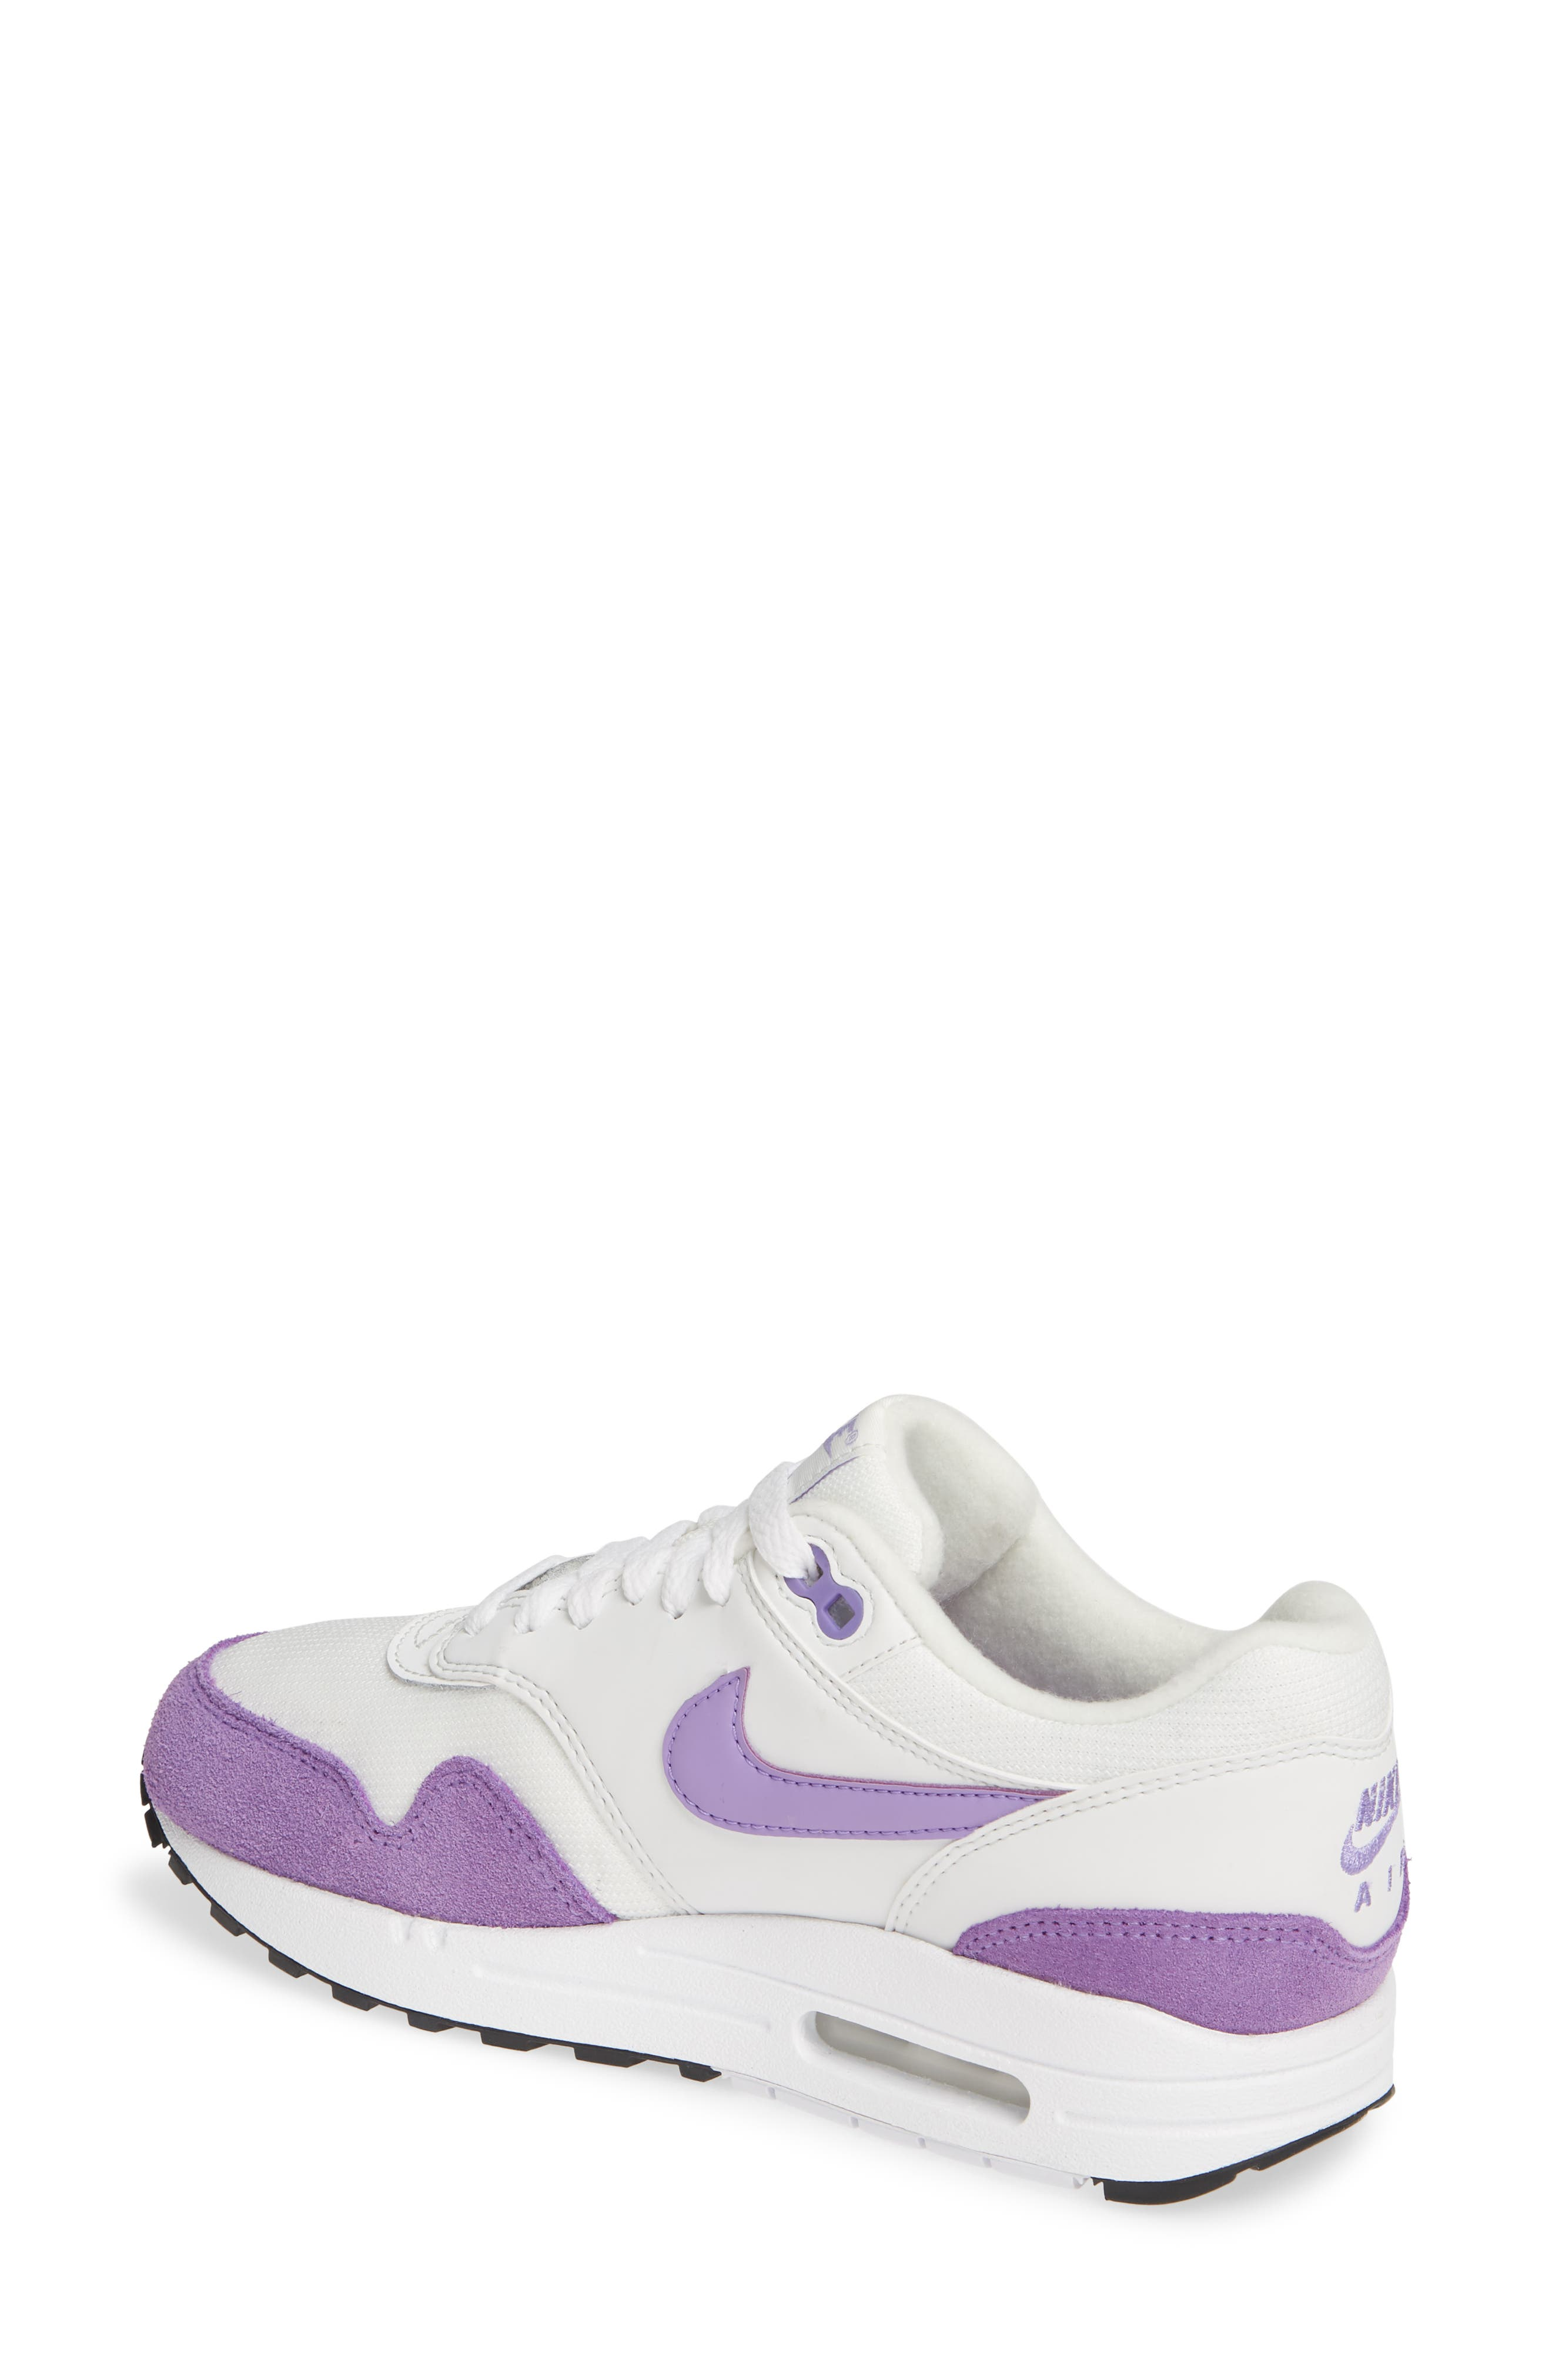 reputable site 0043e cbdbd Nike Women s Shoes and Sneakers   Nordstrom